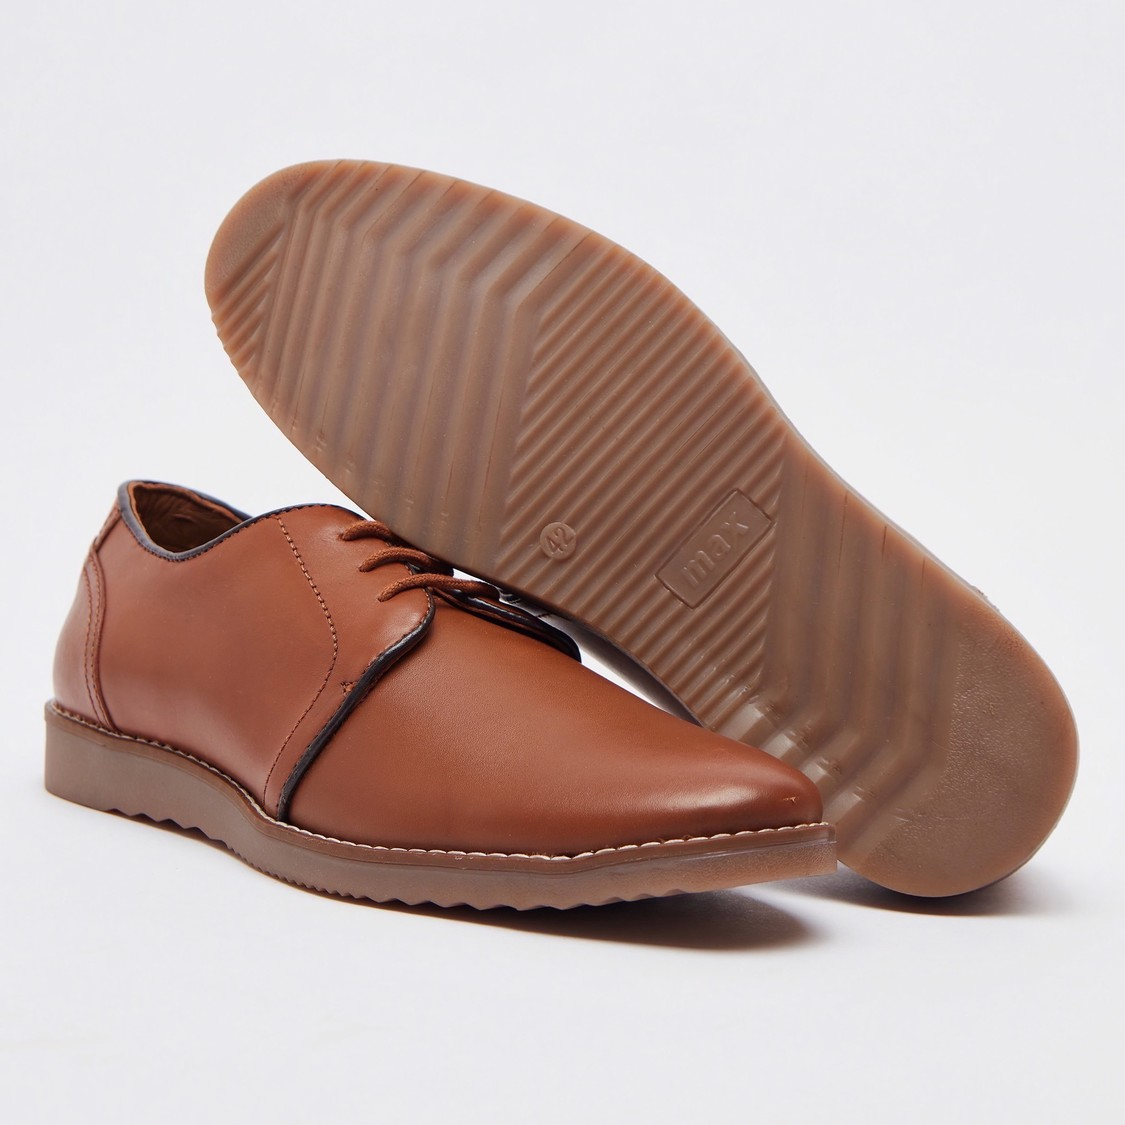 Solid Formal Shoes with Lace-Up Closure